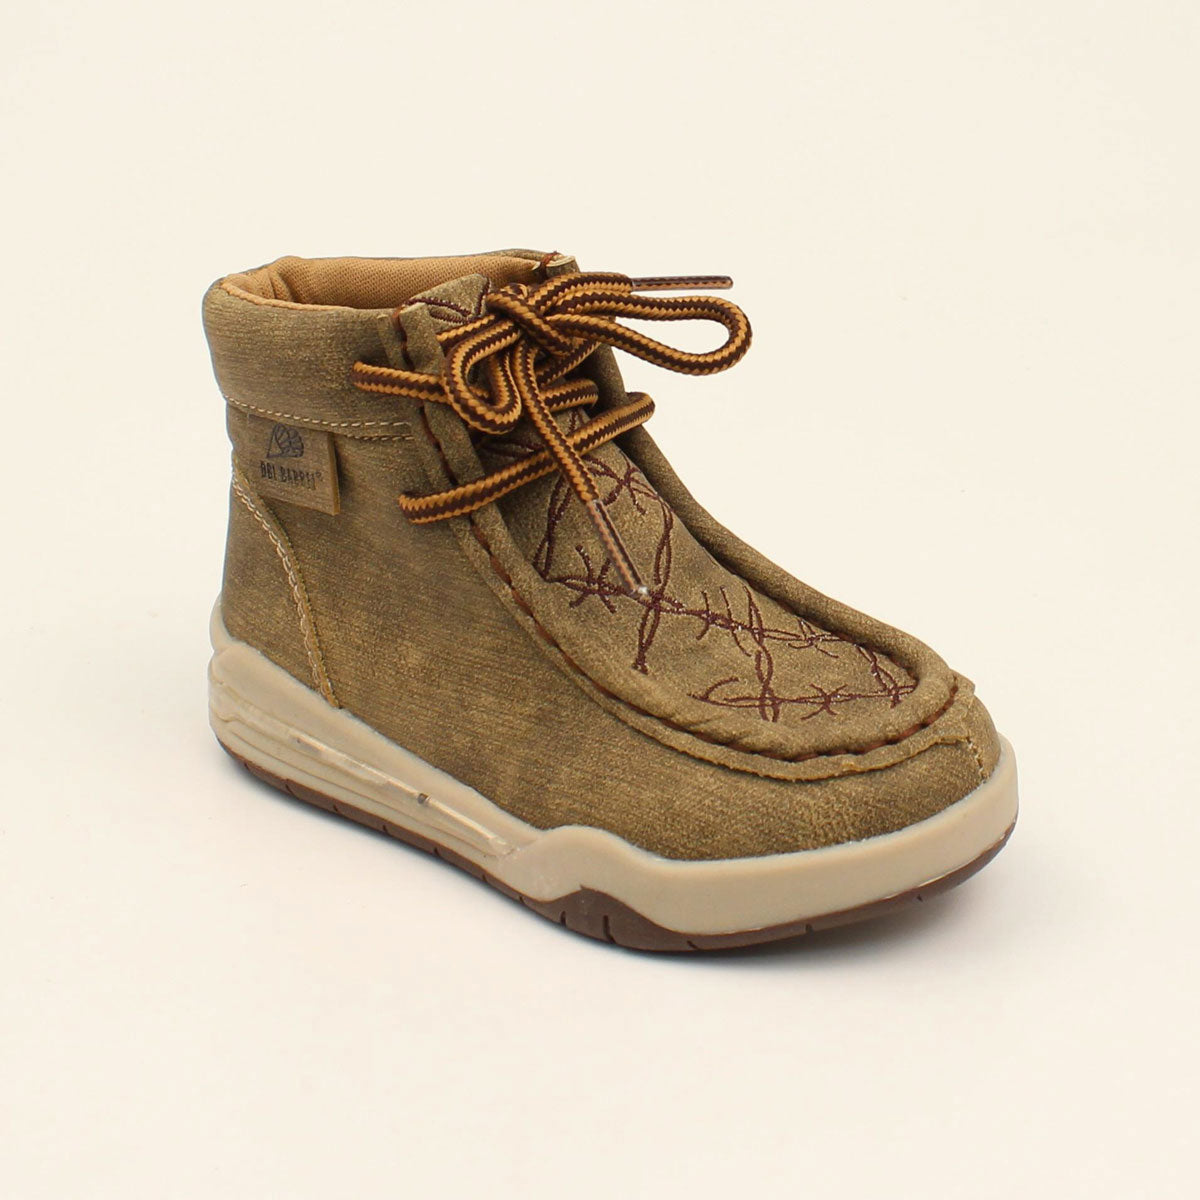 DBL Barrel Boy's Jackson Tan Barbed Wire Light Up Casual Shoes 443000808 446000808